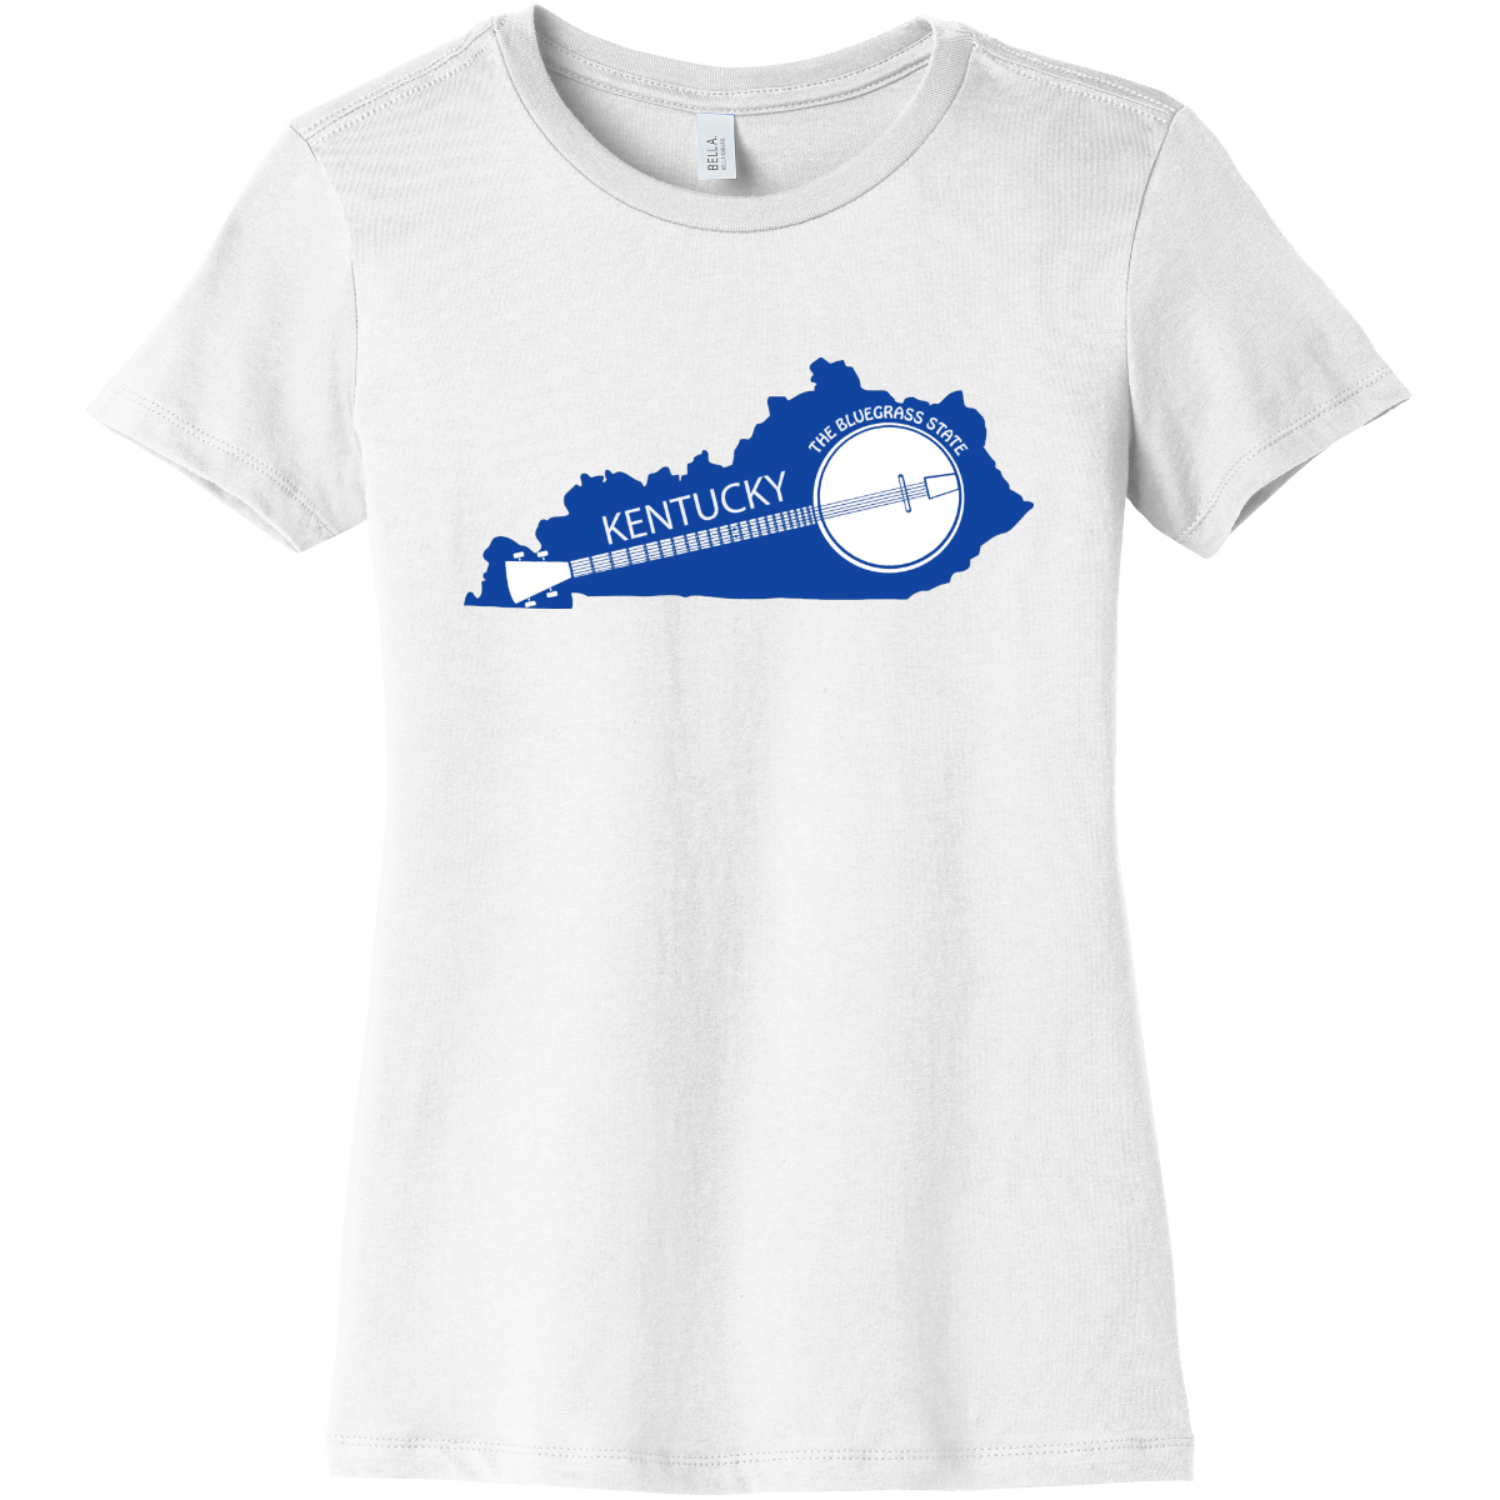 Kentucky State Shaped Banjo Women's T Shirt White Bella Canvas 6004 Ladies The Favorite Tee